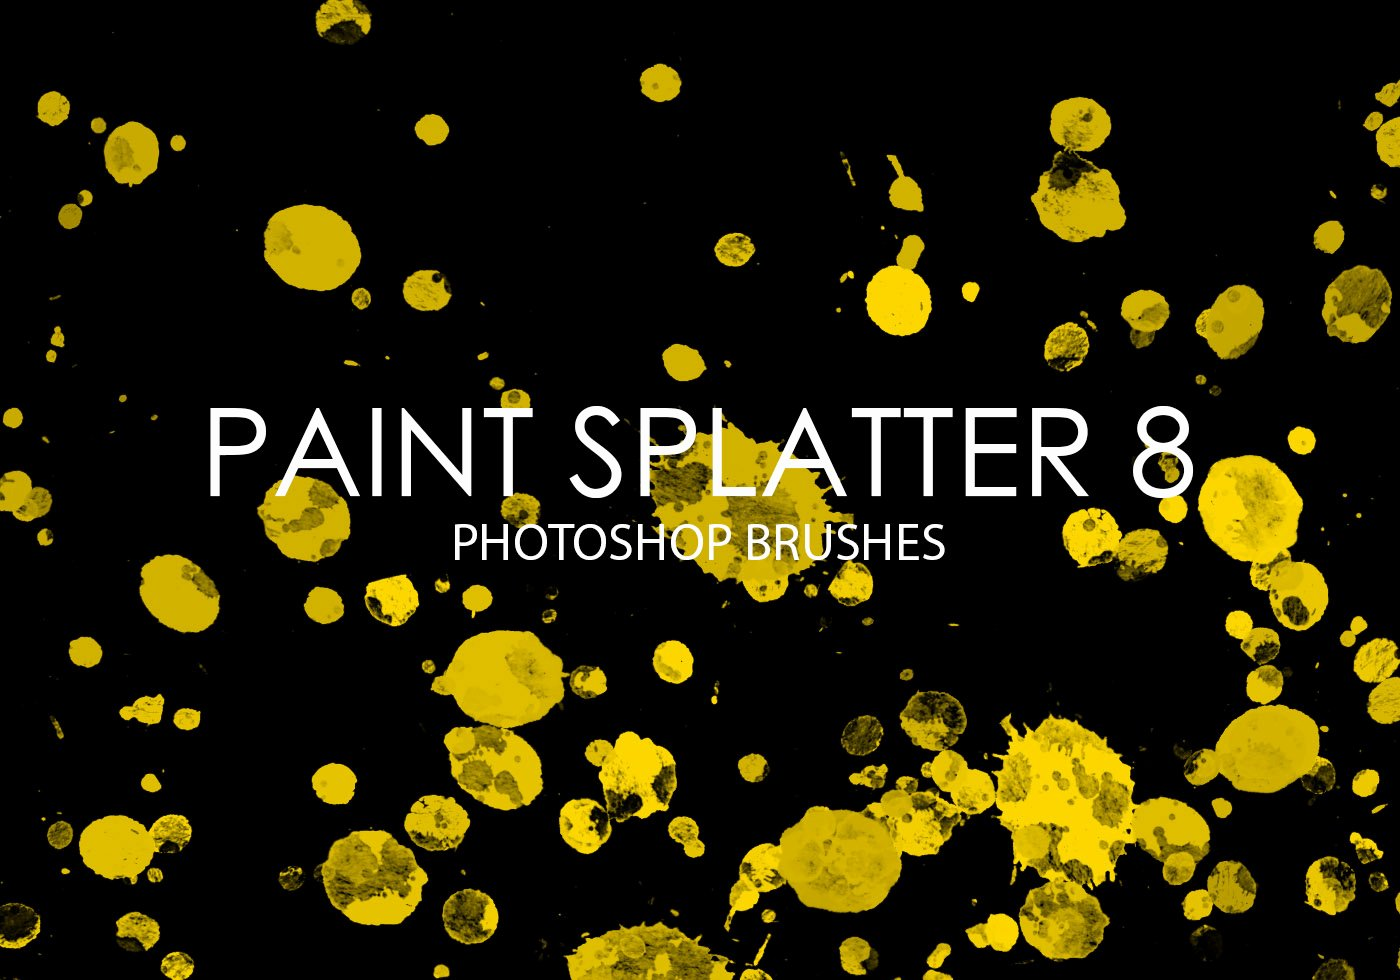 Paint Splatter Brush Photoshop Unique Free Paint Splatter Shop Brushes 8 Free Shop